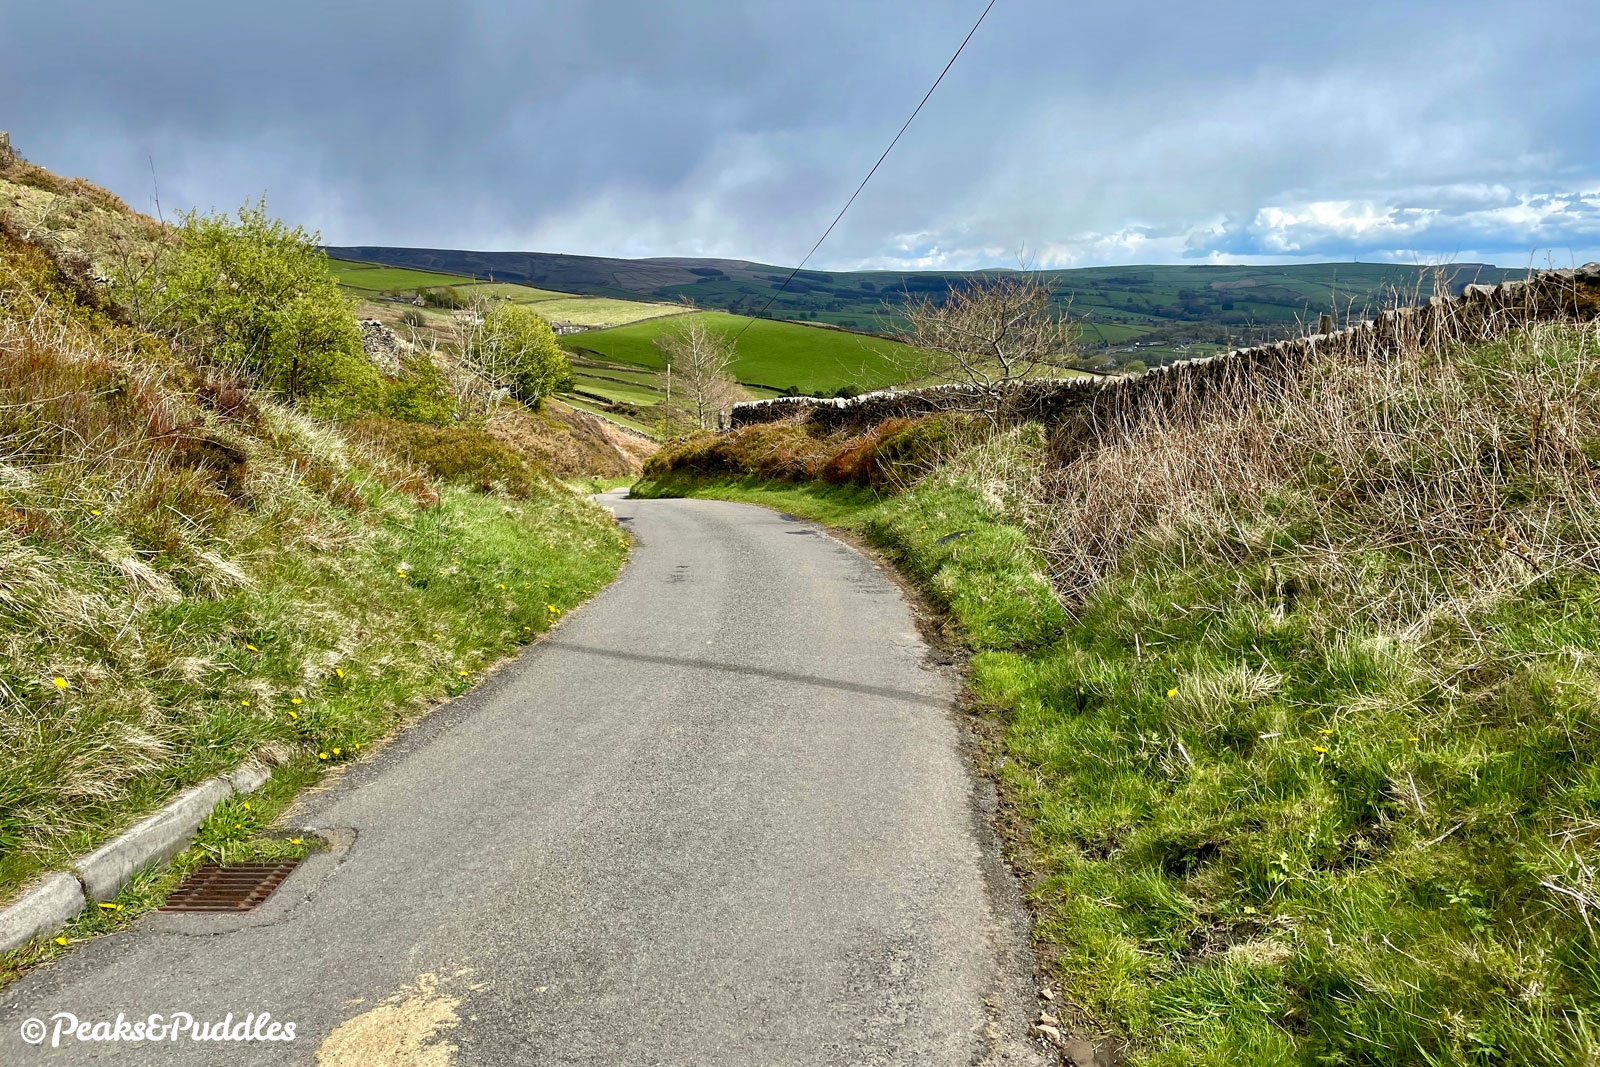 Looking back down Over Hill Road, the distant hills belong to Bagshaw and Peaslows.